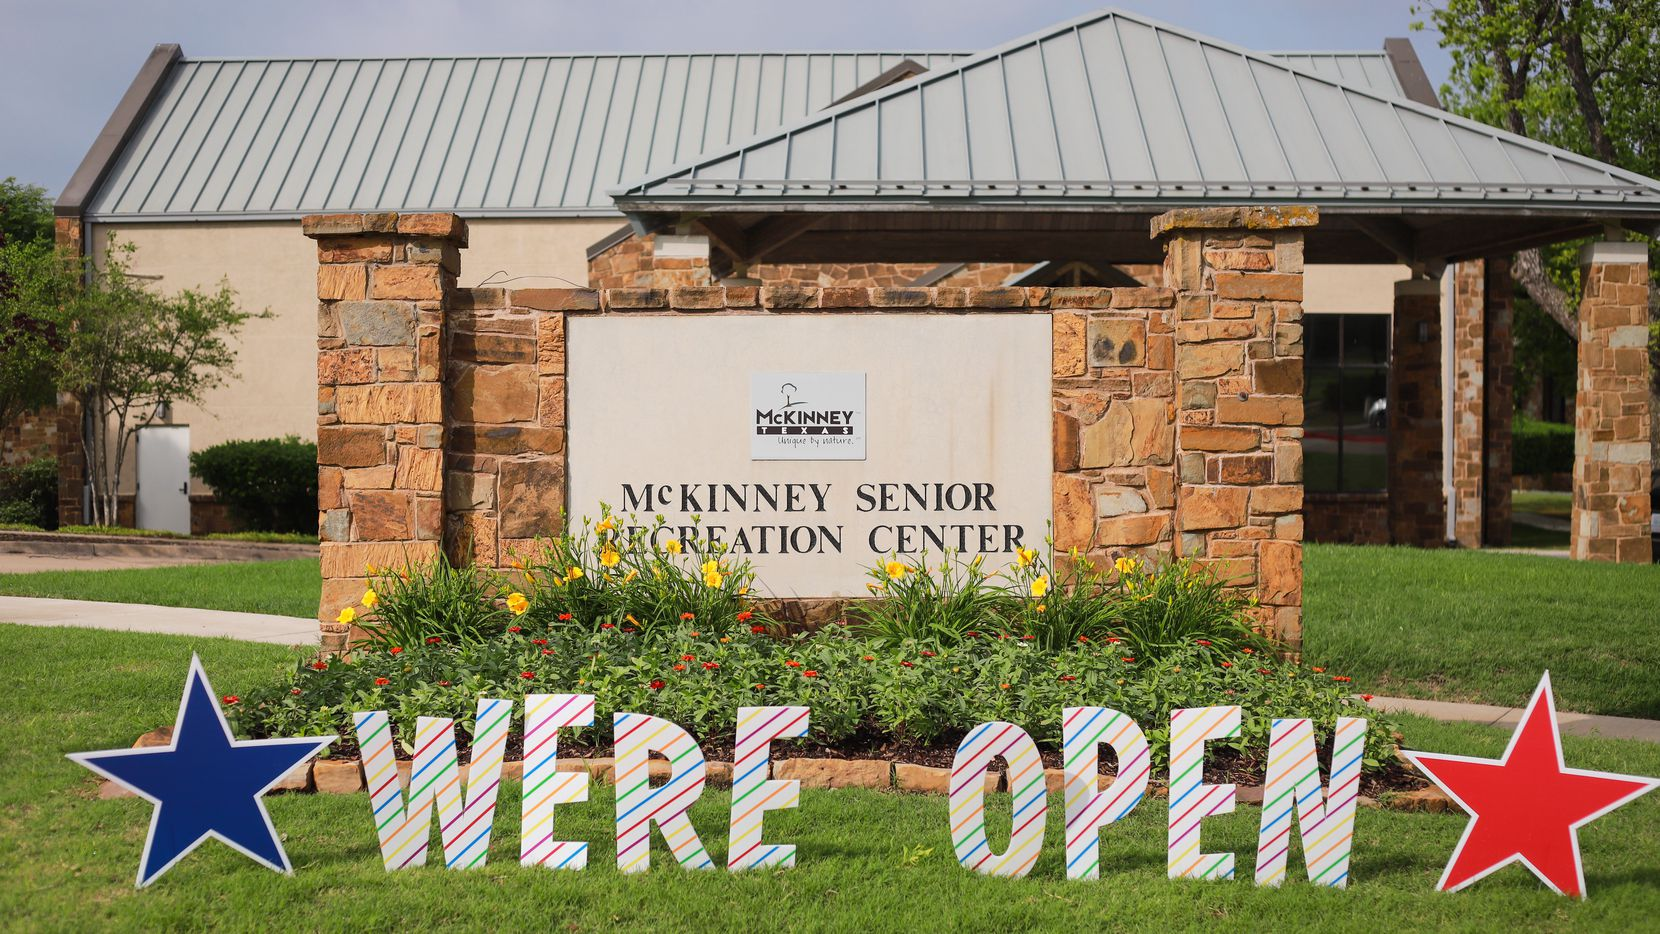 The McKinney Senior Recreation Center has reopened after a renovation.